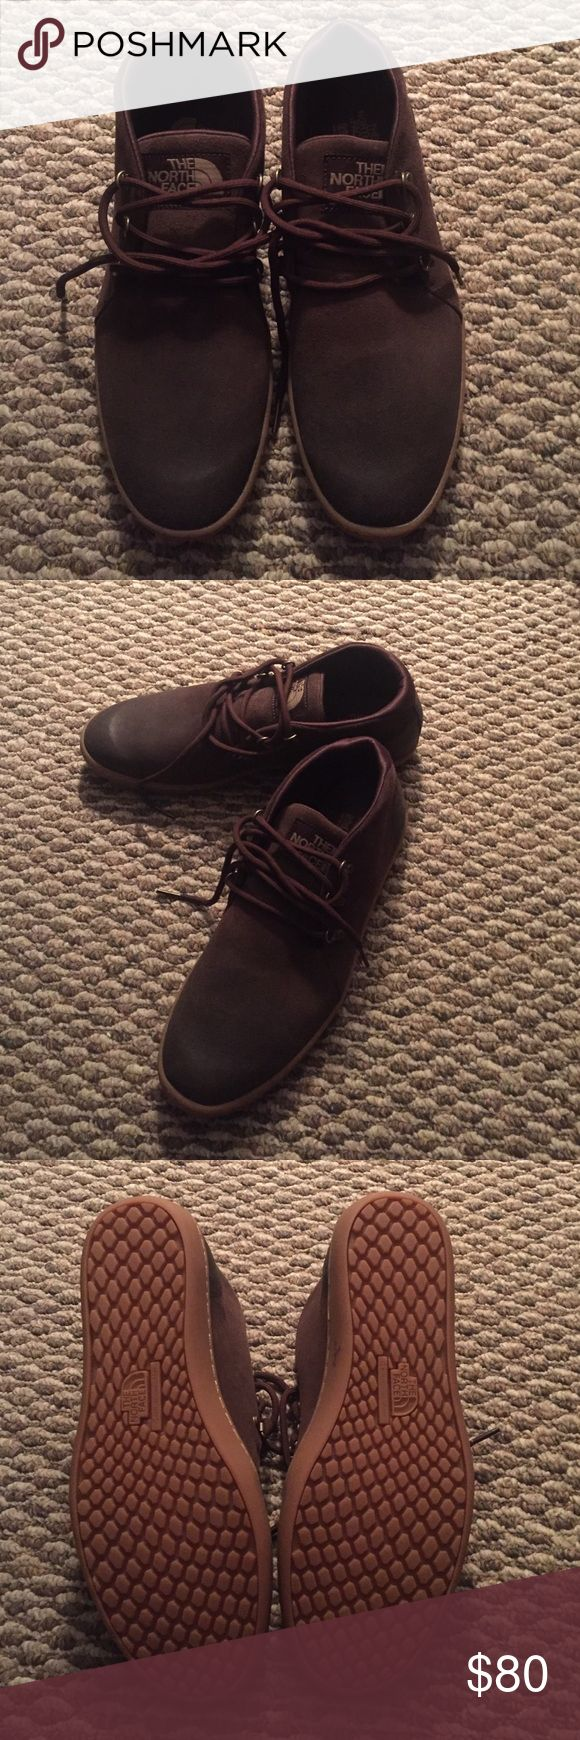 Men's North Face Chukka Boots NIB Men's size 9.5 brown chukka boots. Never been worn. In the original box! The North Face Shoes Chukka Boots